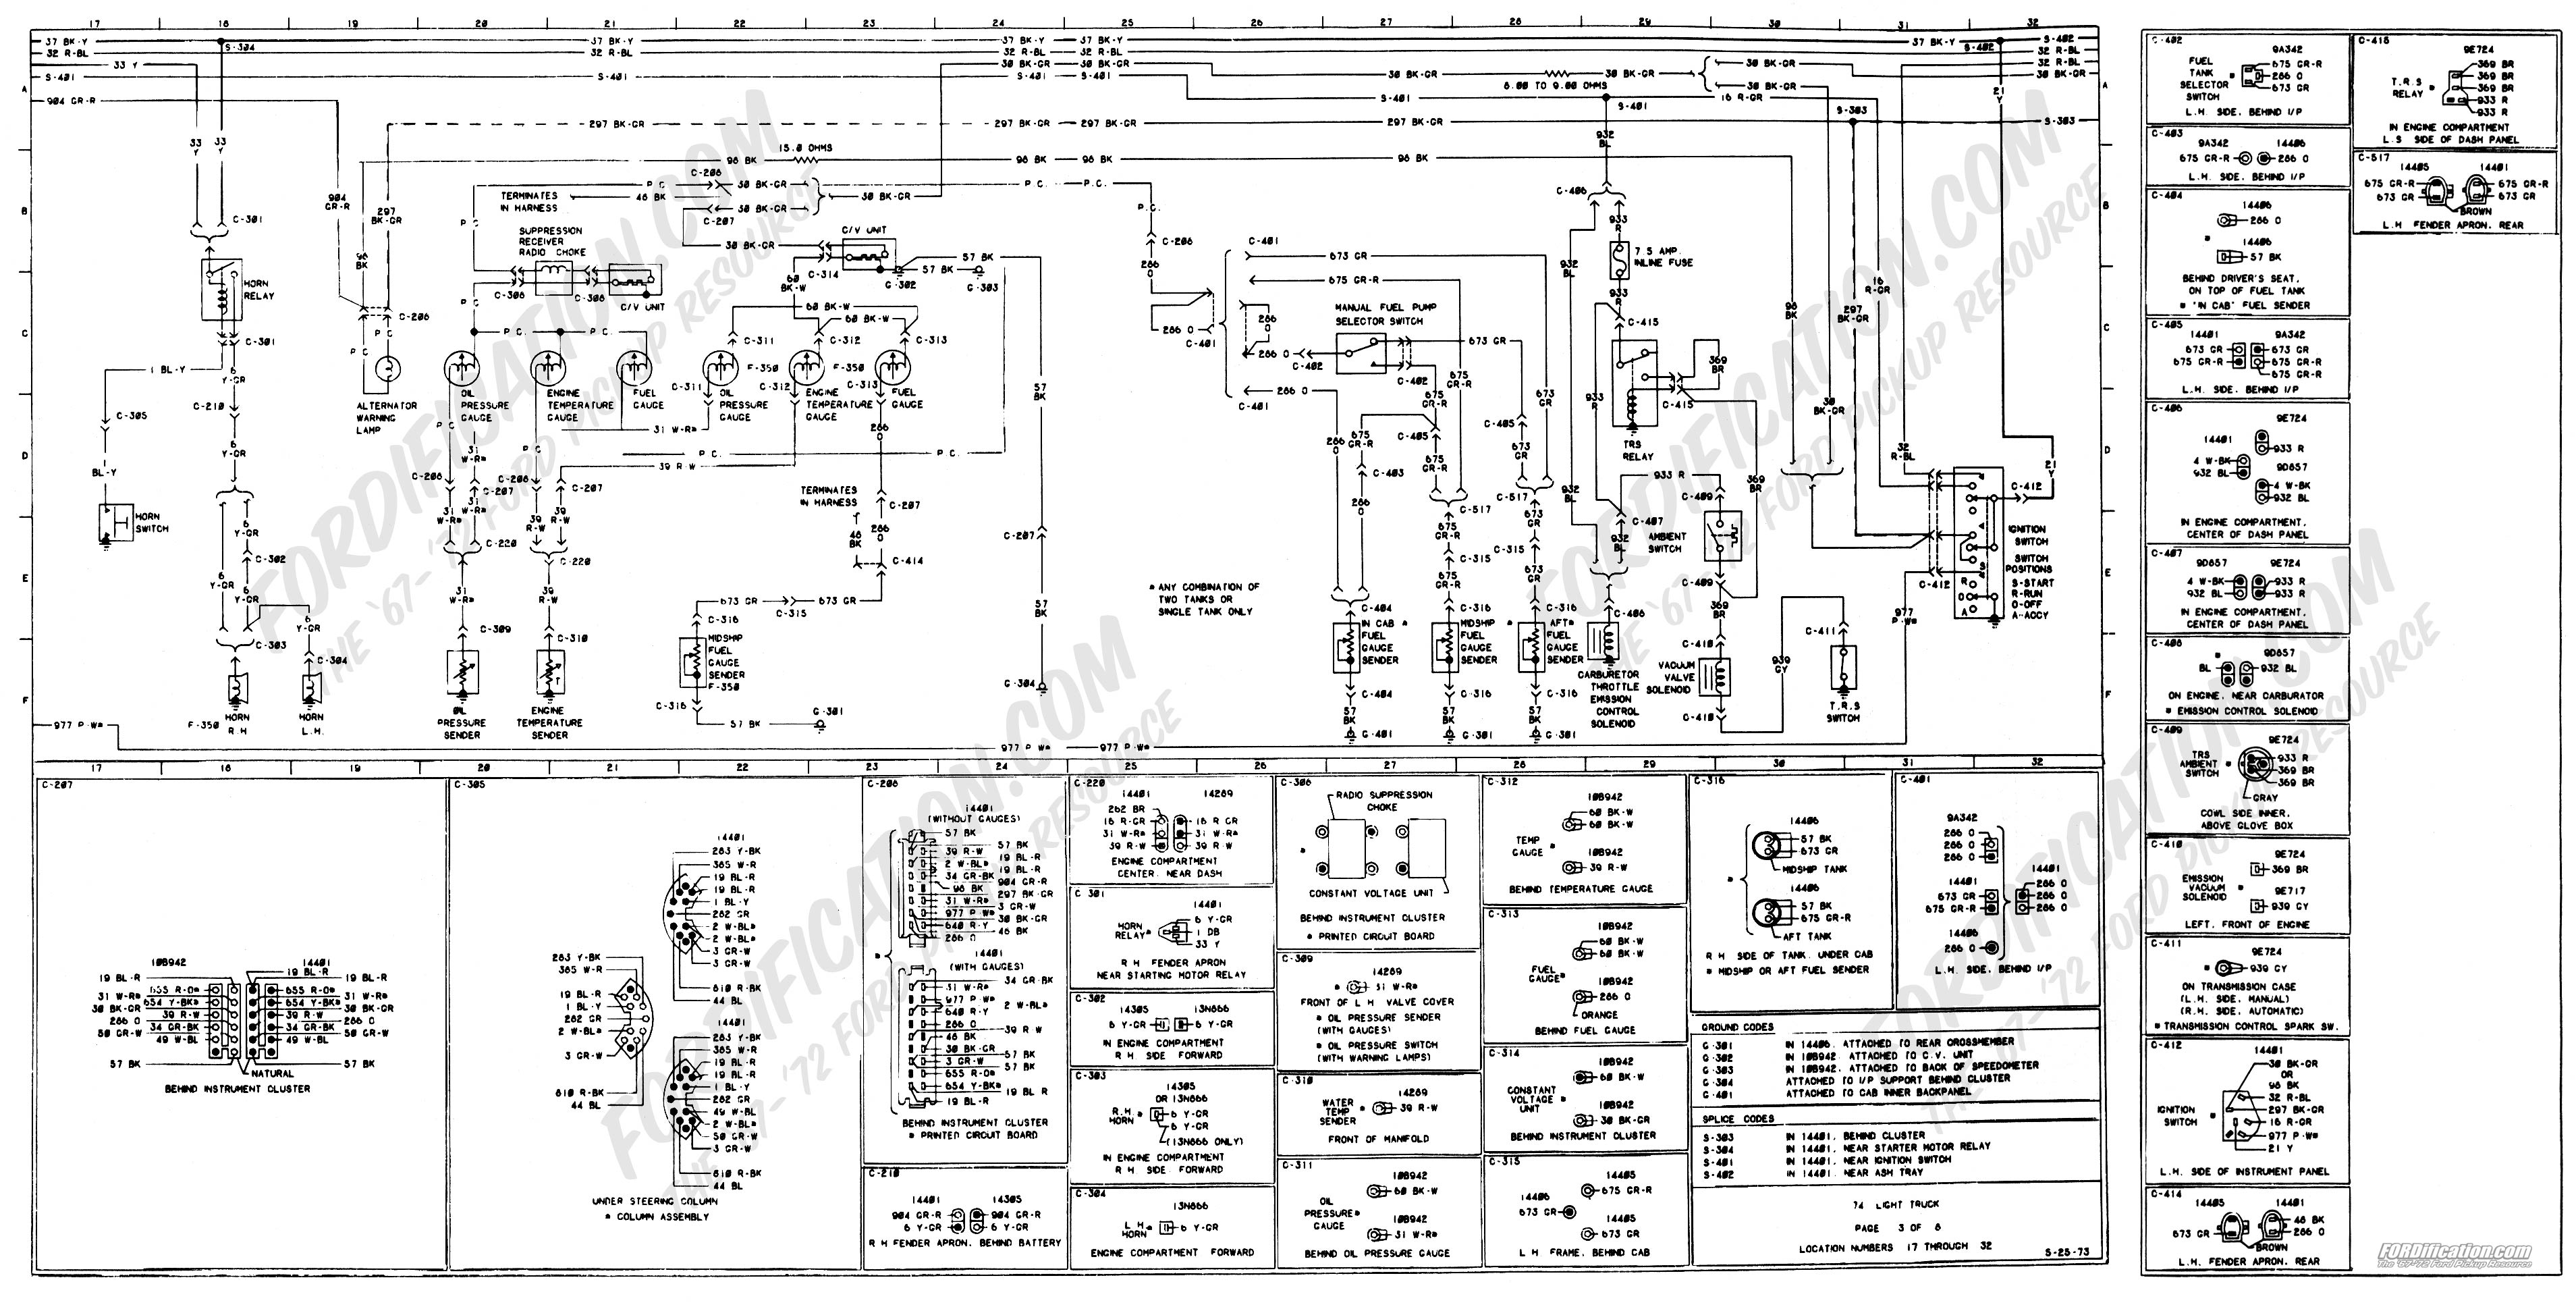 79 Ford Truck Horn Wiring Schematic F250 Diagram 1973 1979 Diagrams Schematics Fordification Net Ranger